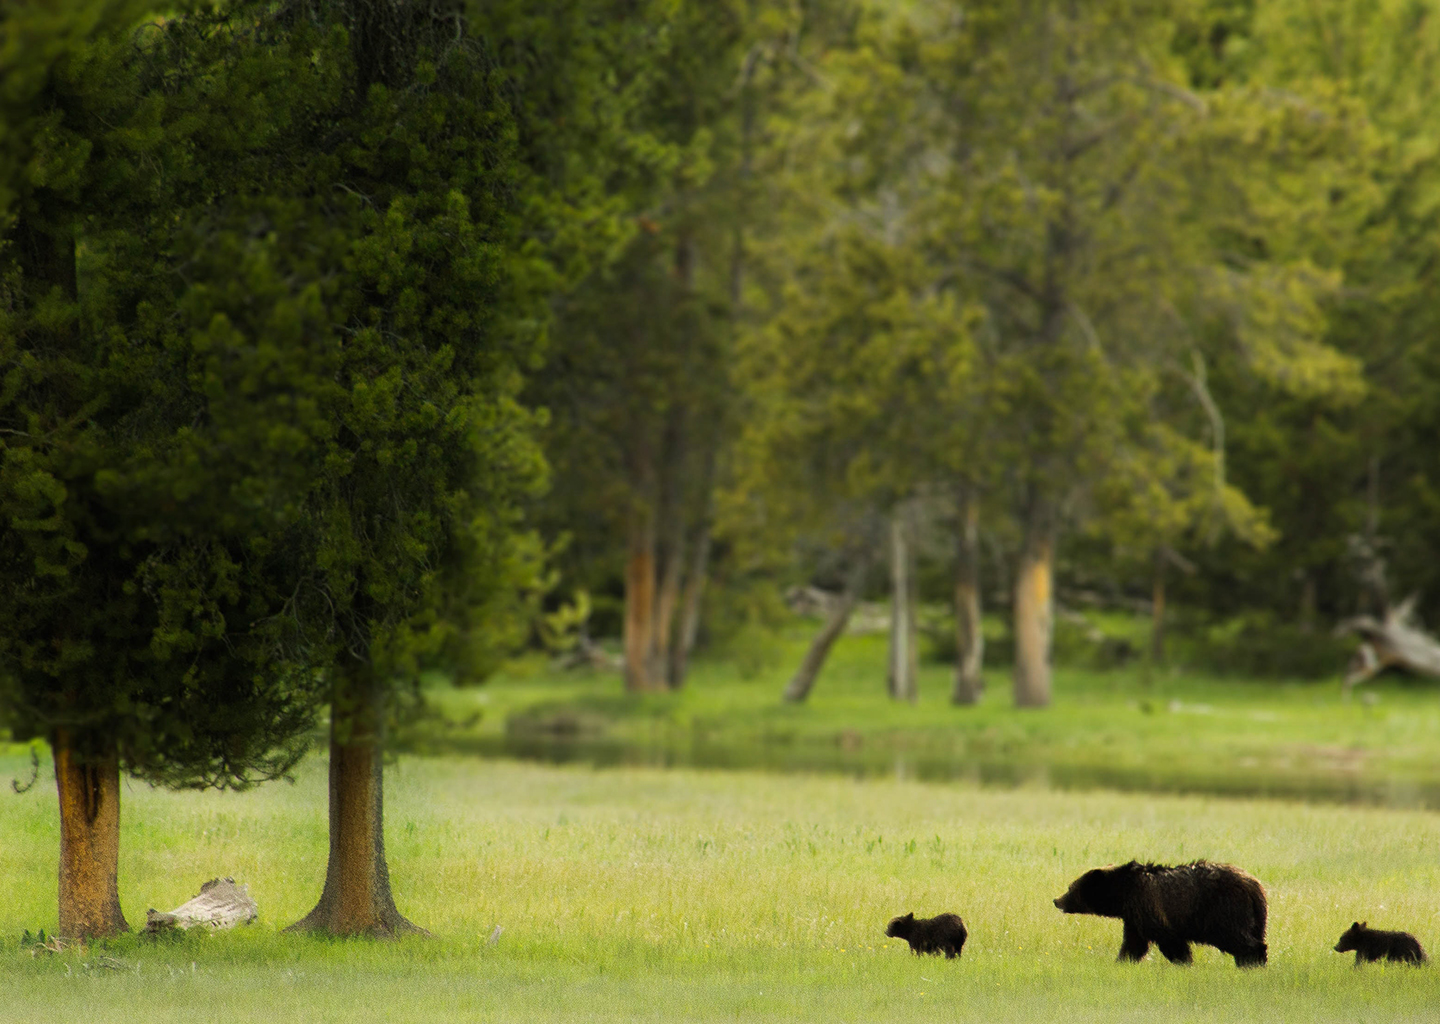 Black Bear and cubs cross a green meadow